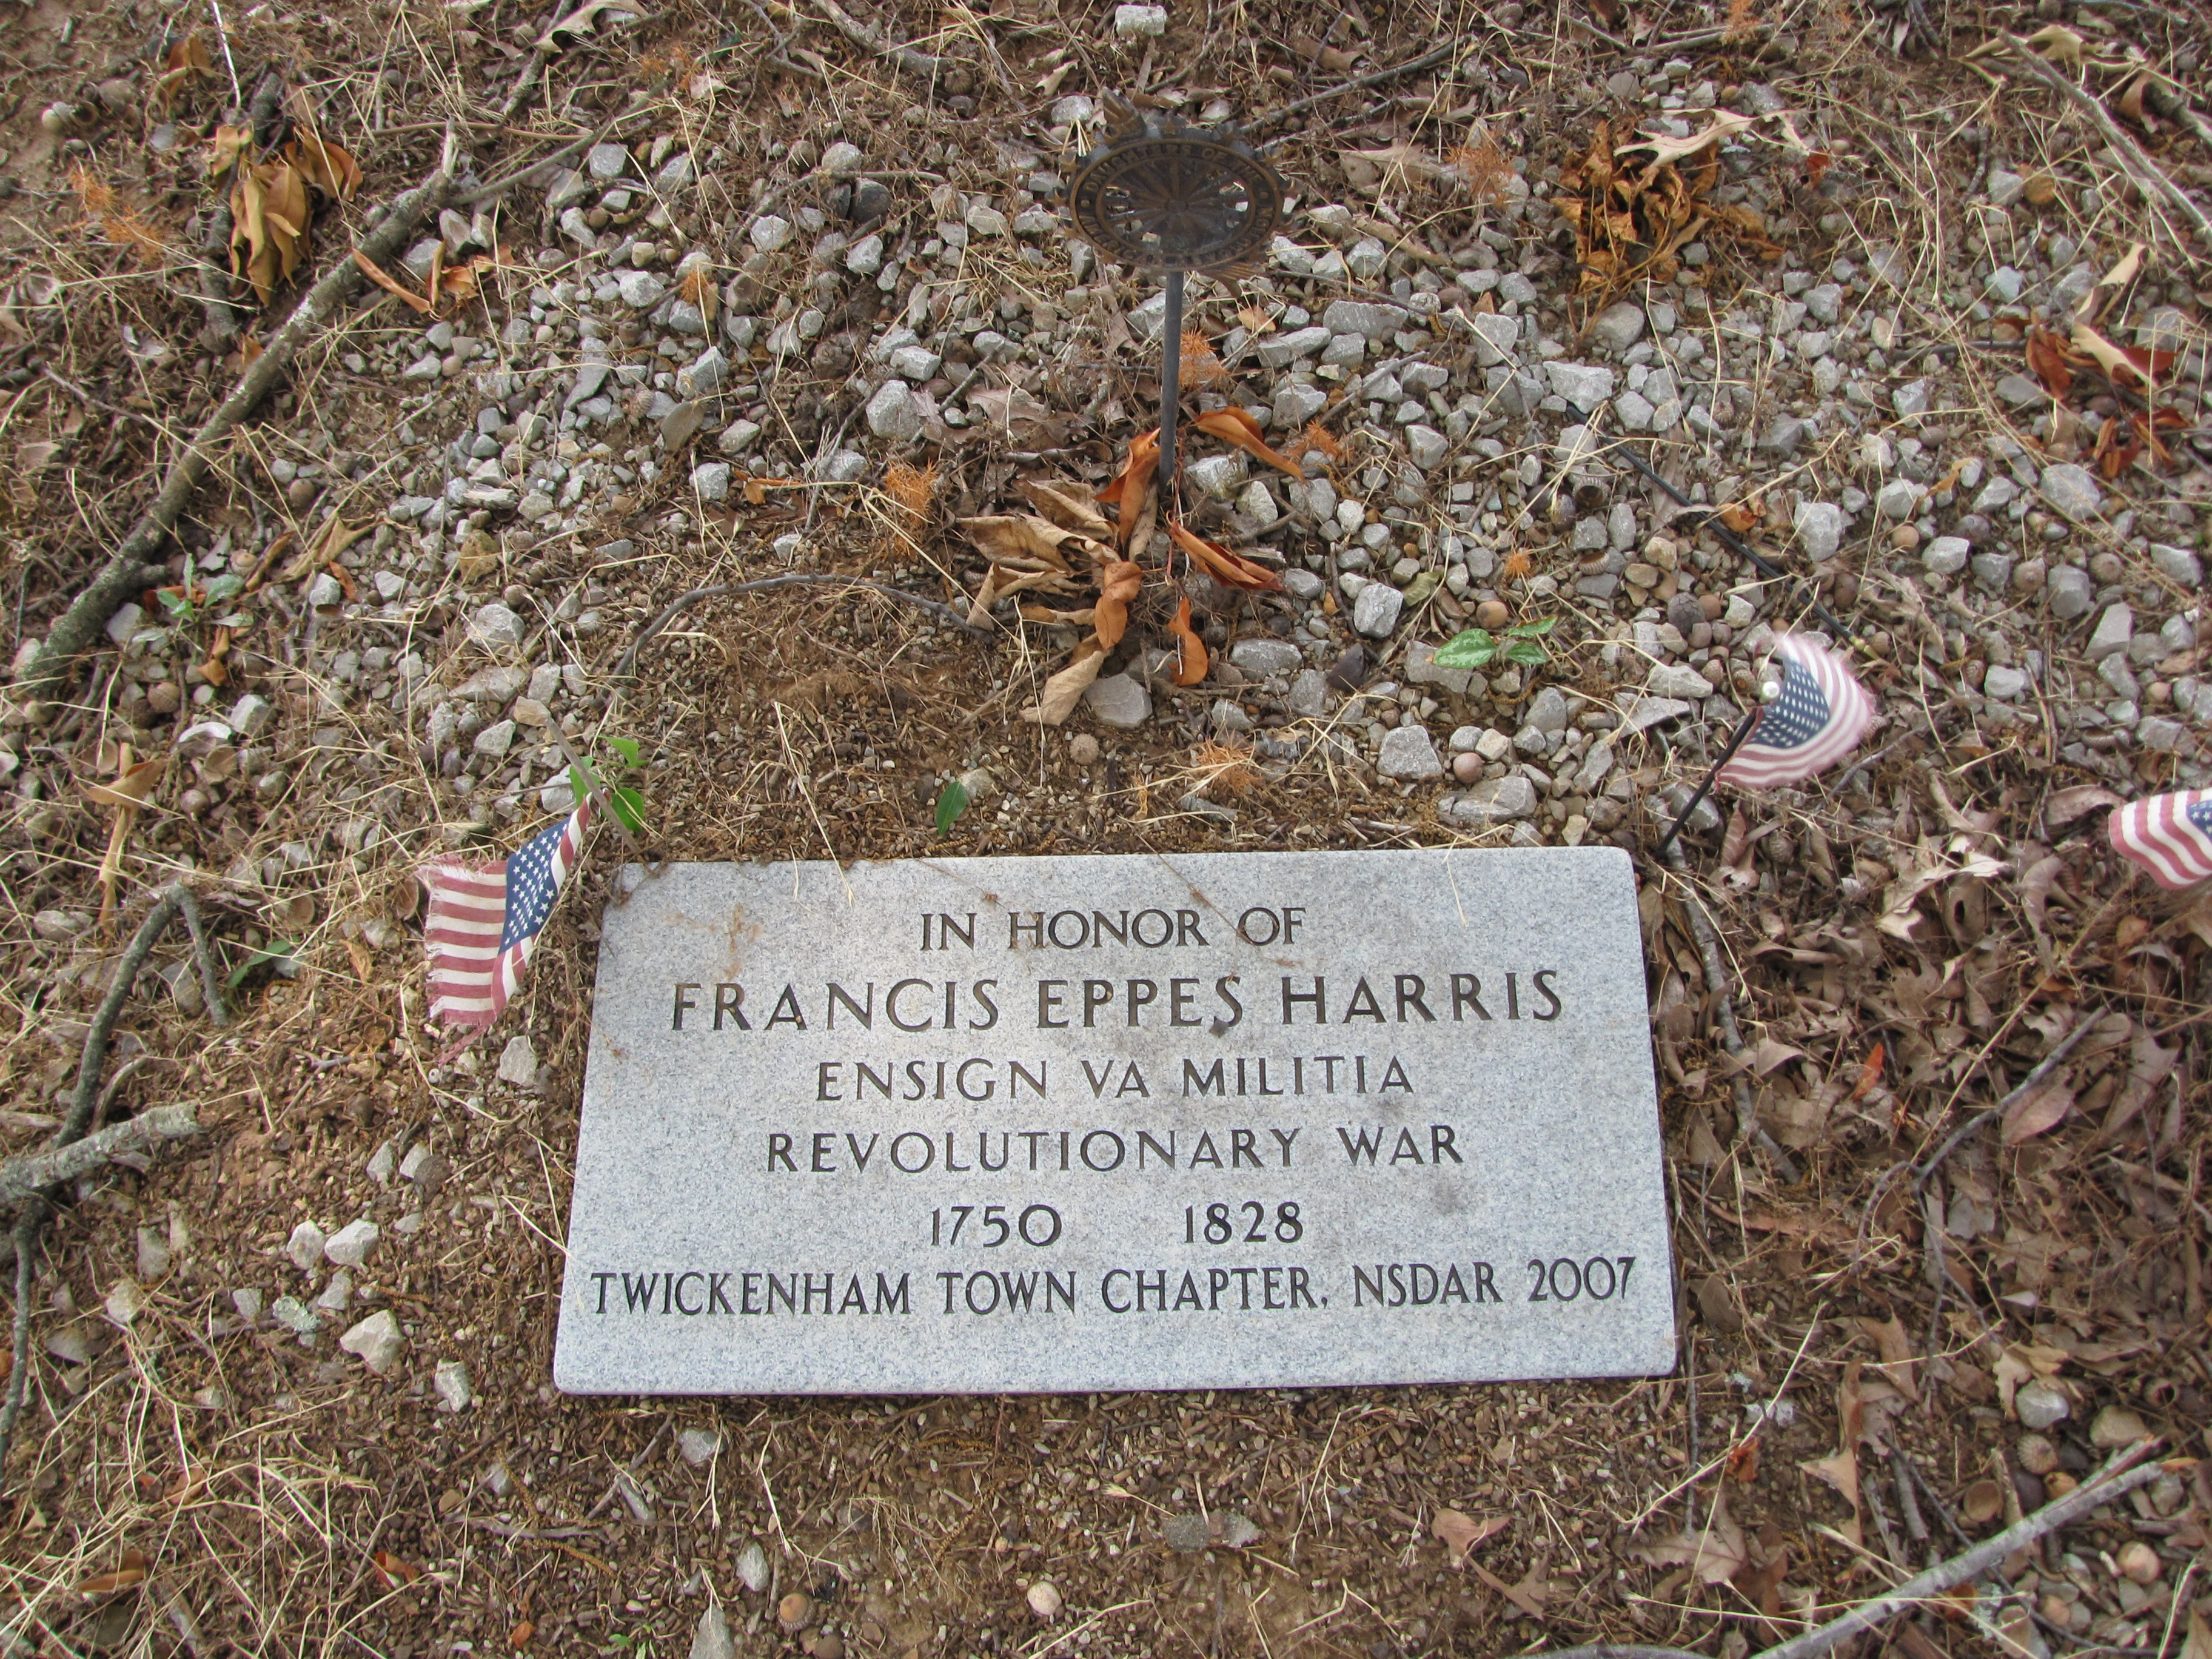 In honor of Francis Eppes Harris